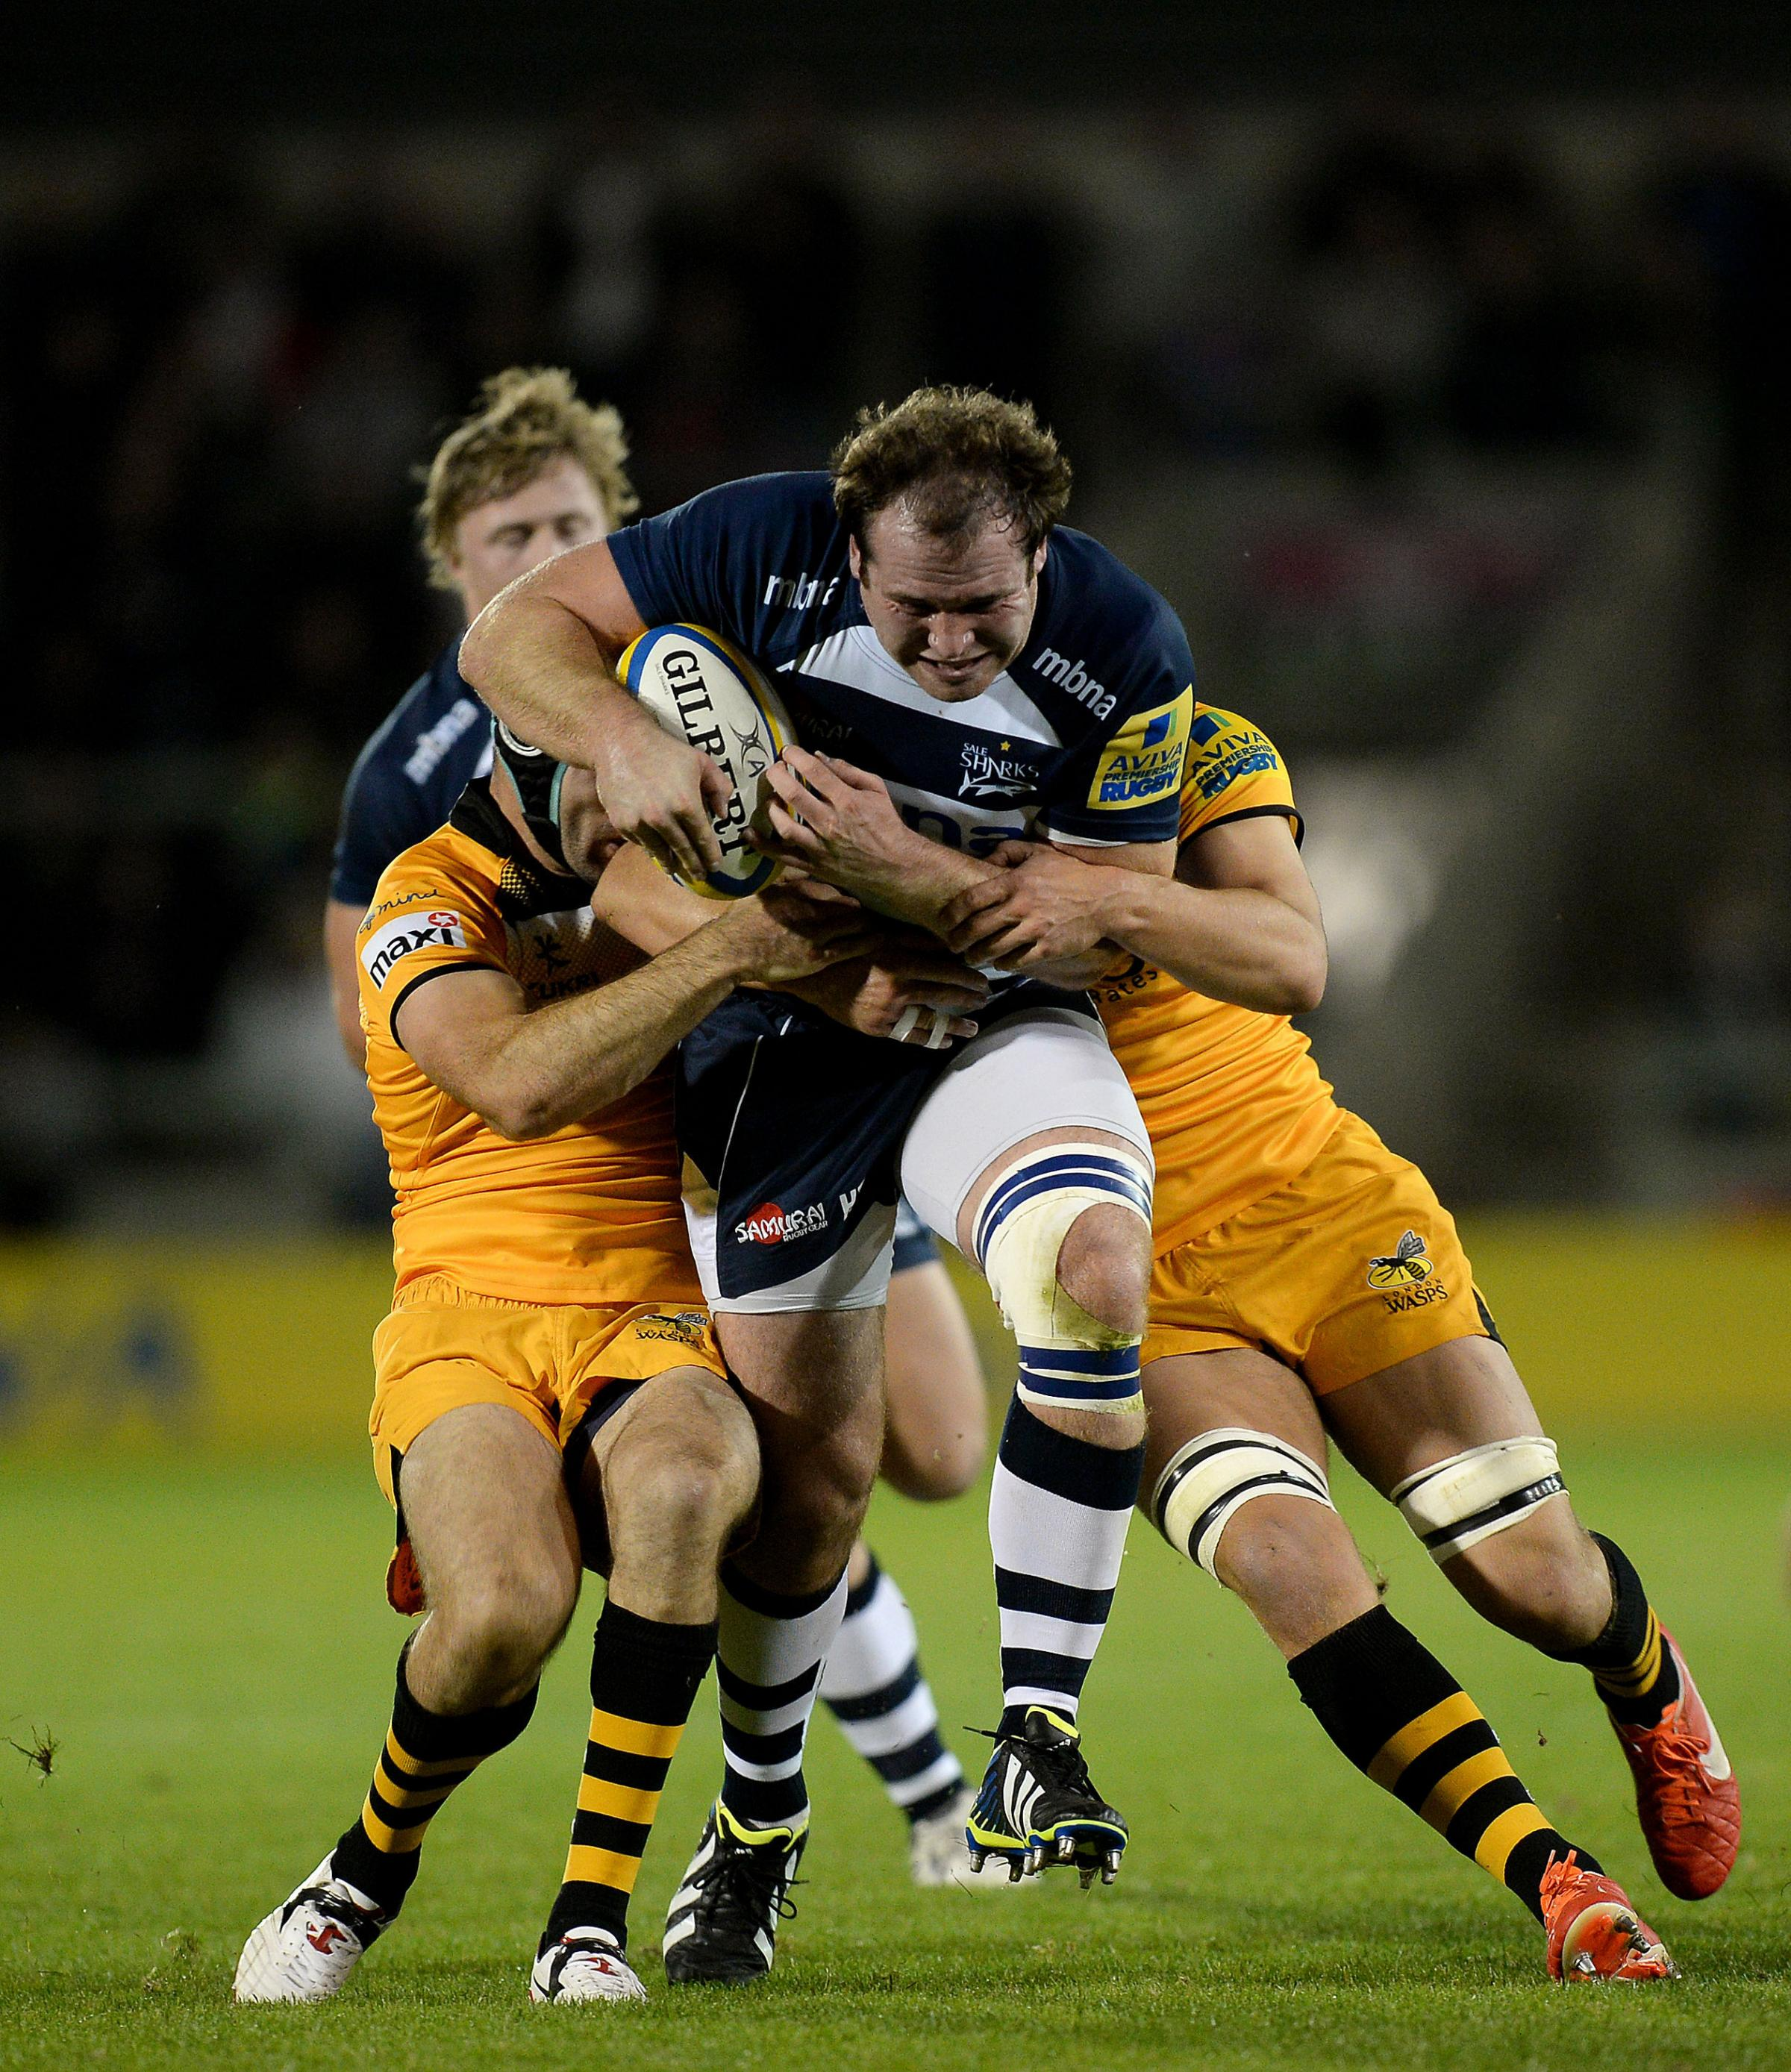 Henry Thomas will join Bath next season